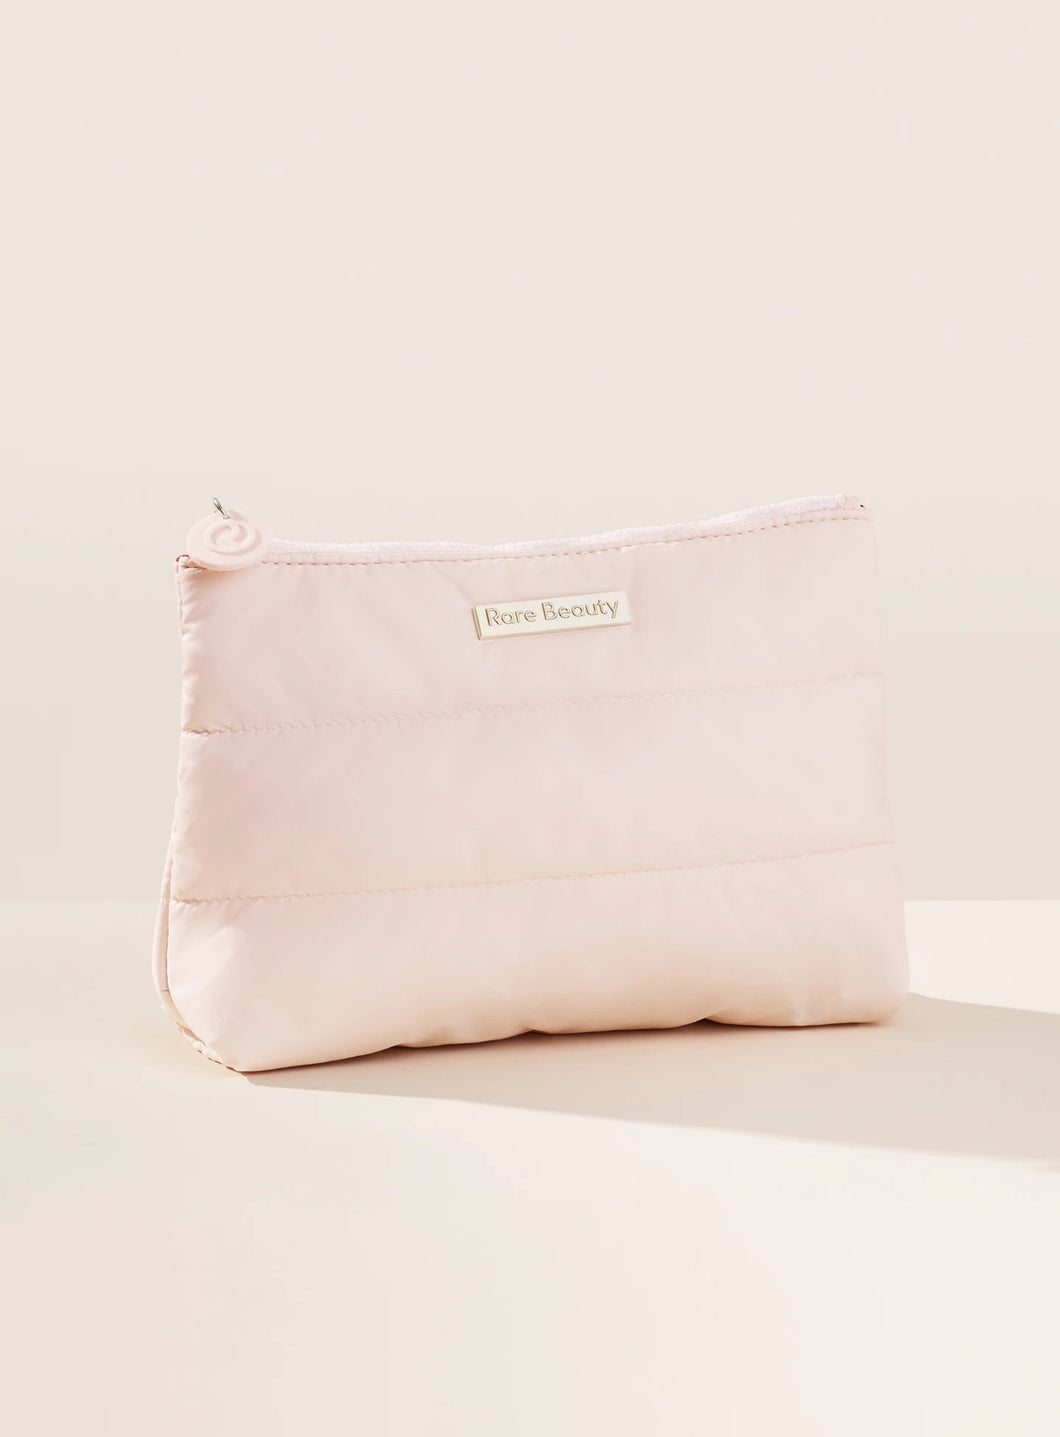 Rare Beauty Puffy Makeup Bag